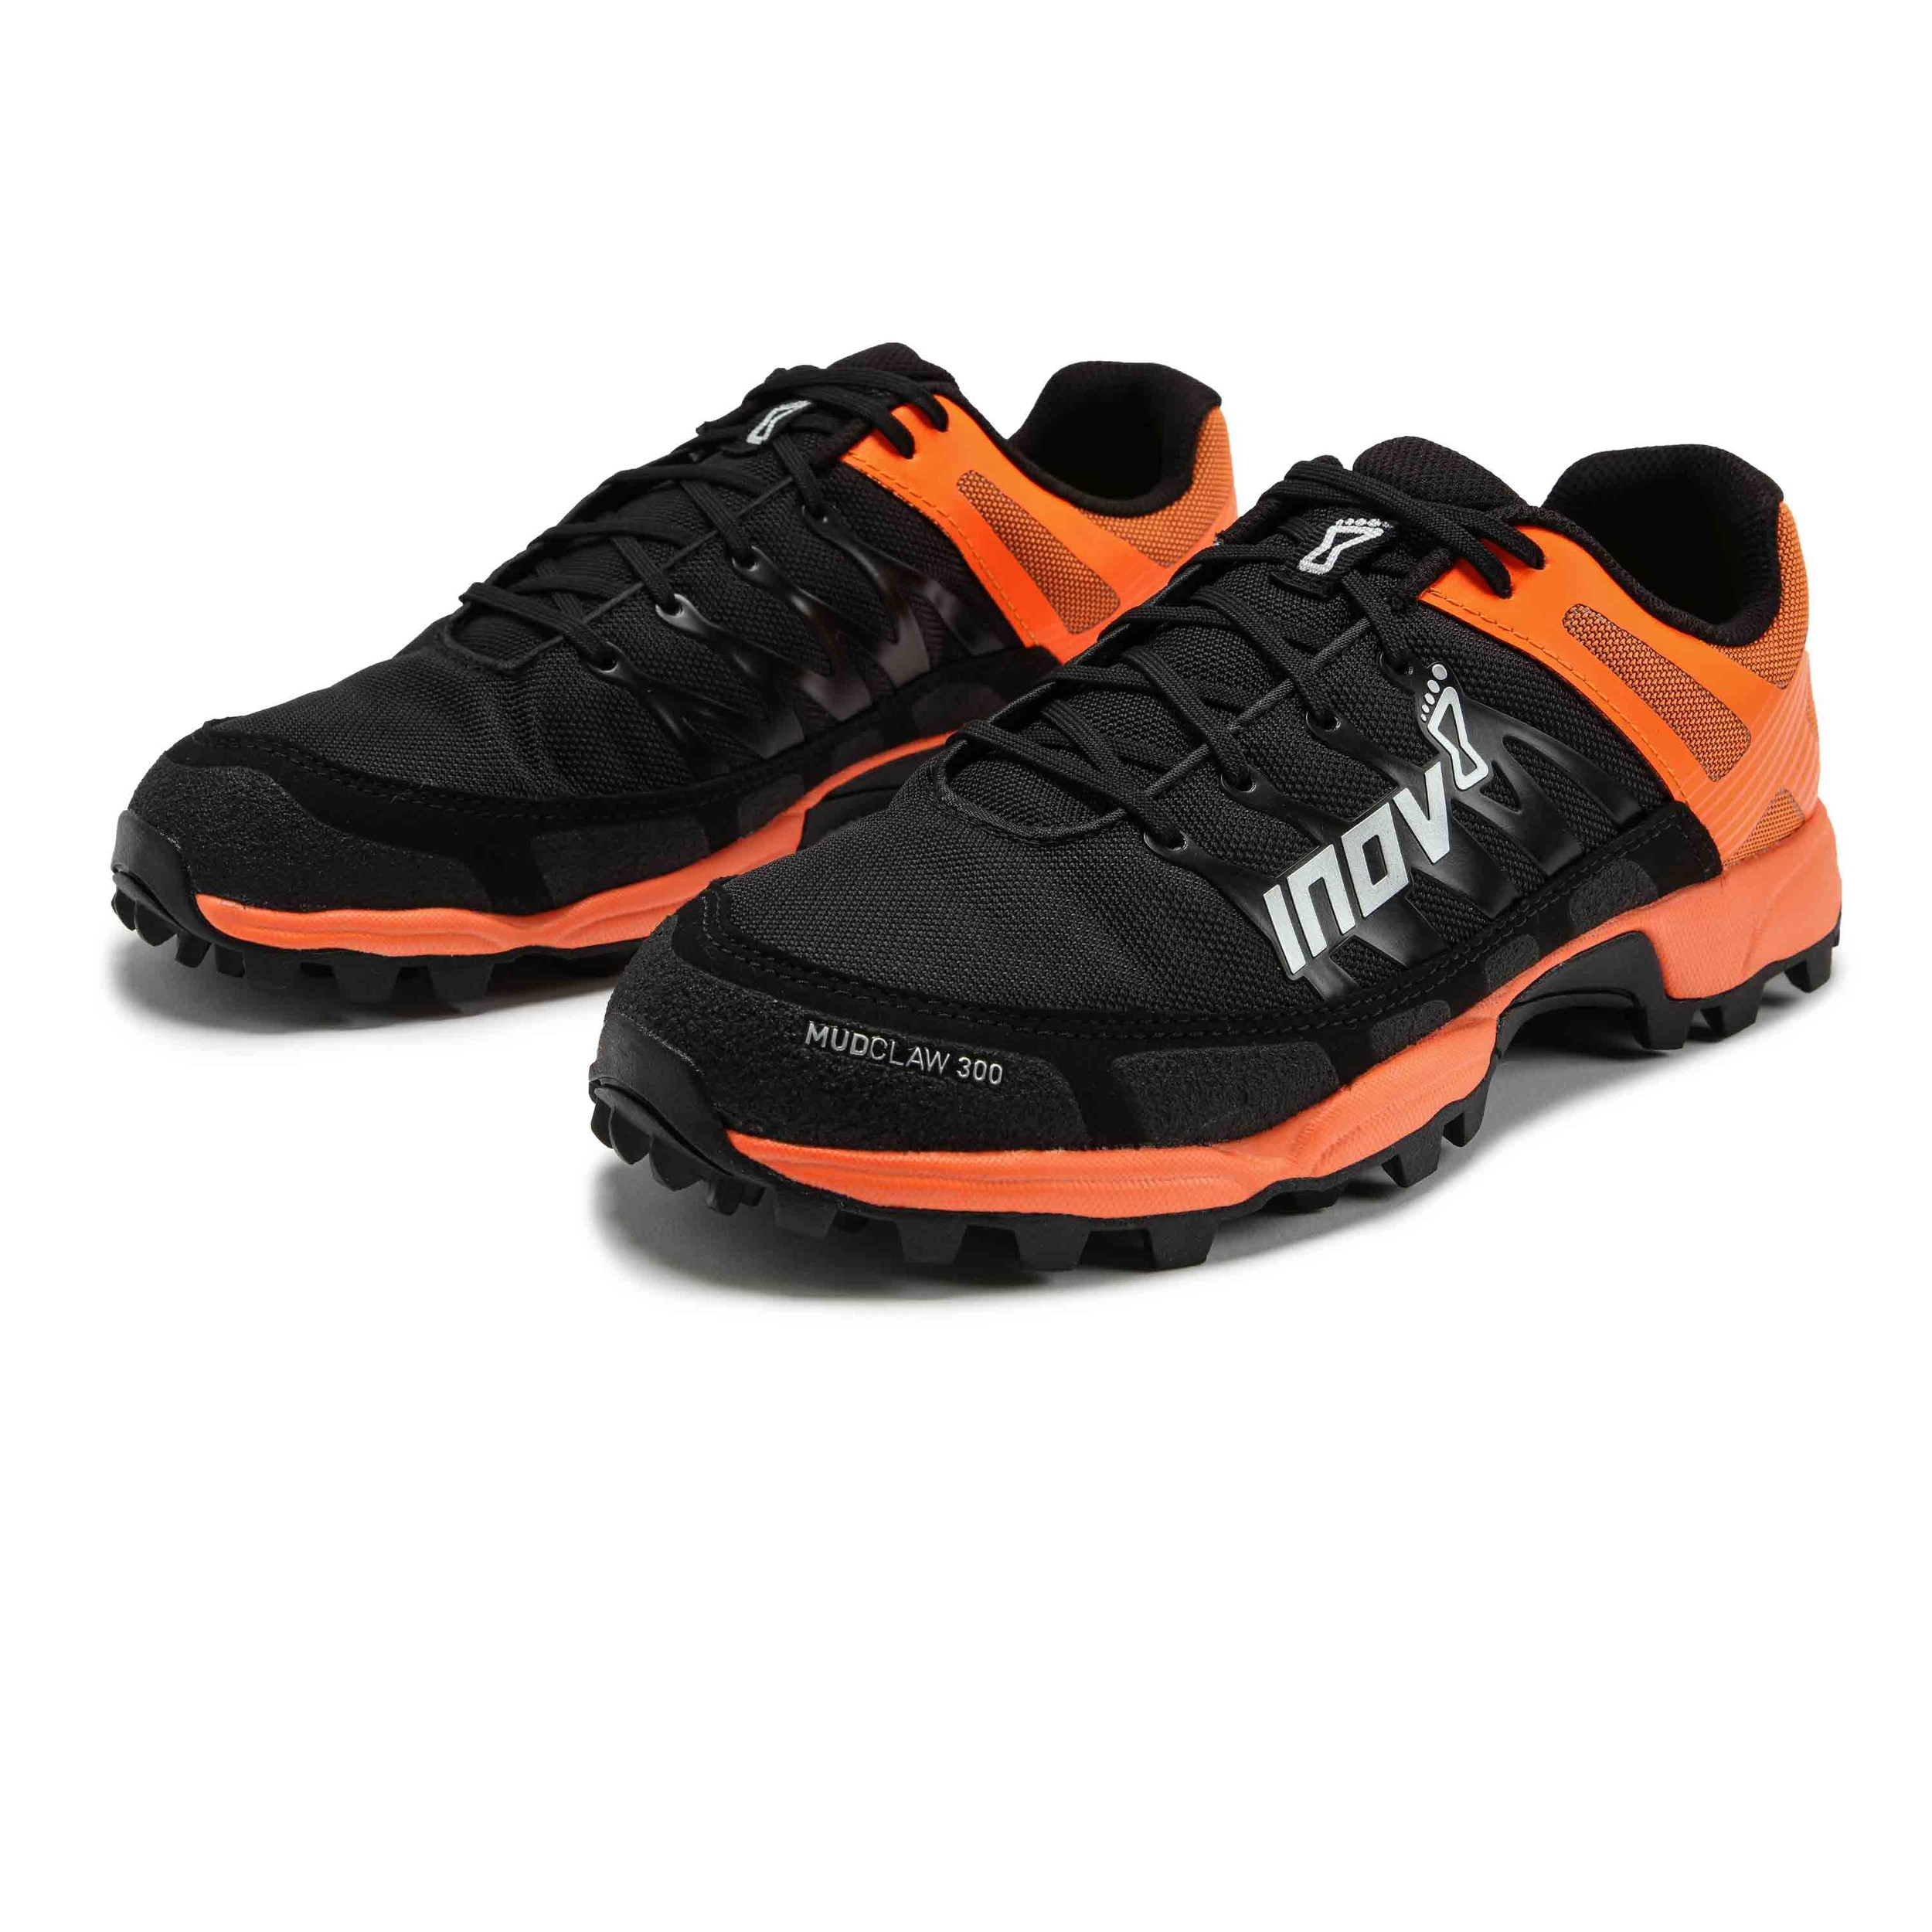 Inov8 Mudclaw 300 Trail Running Shoes - AW20